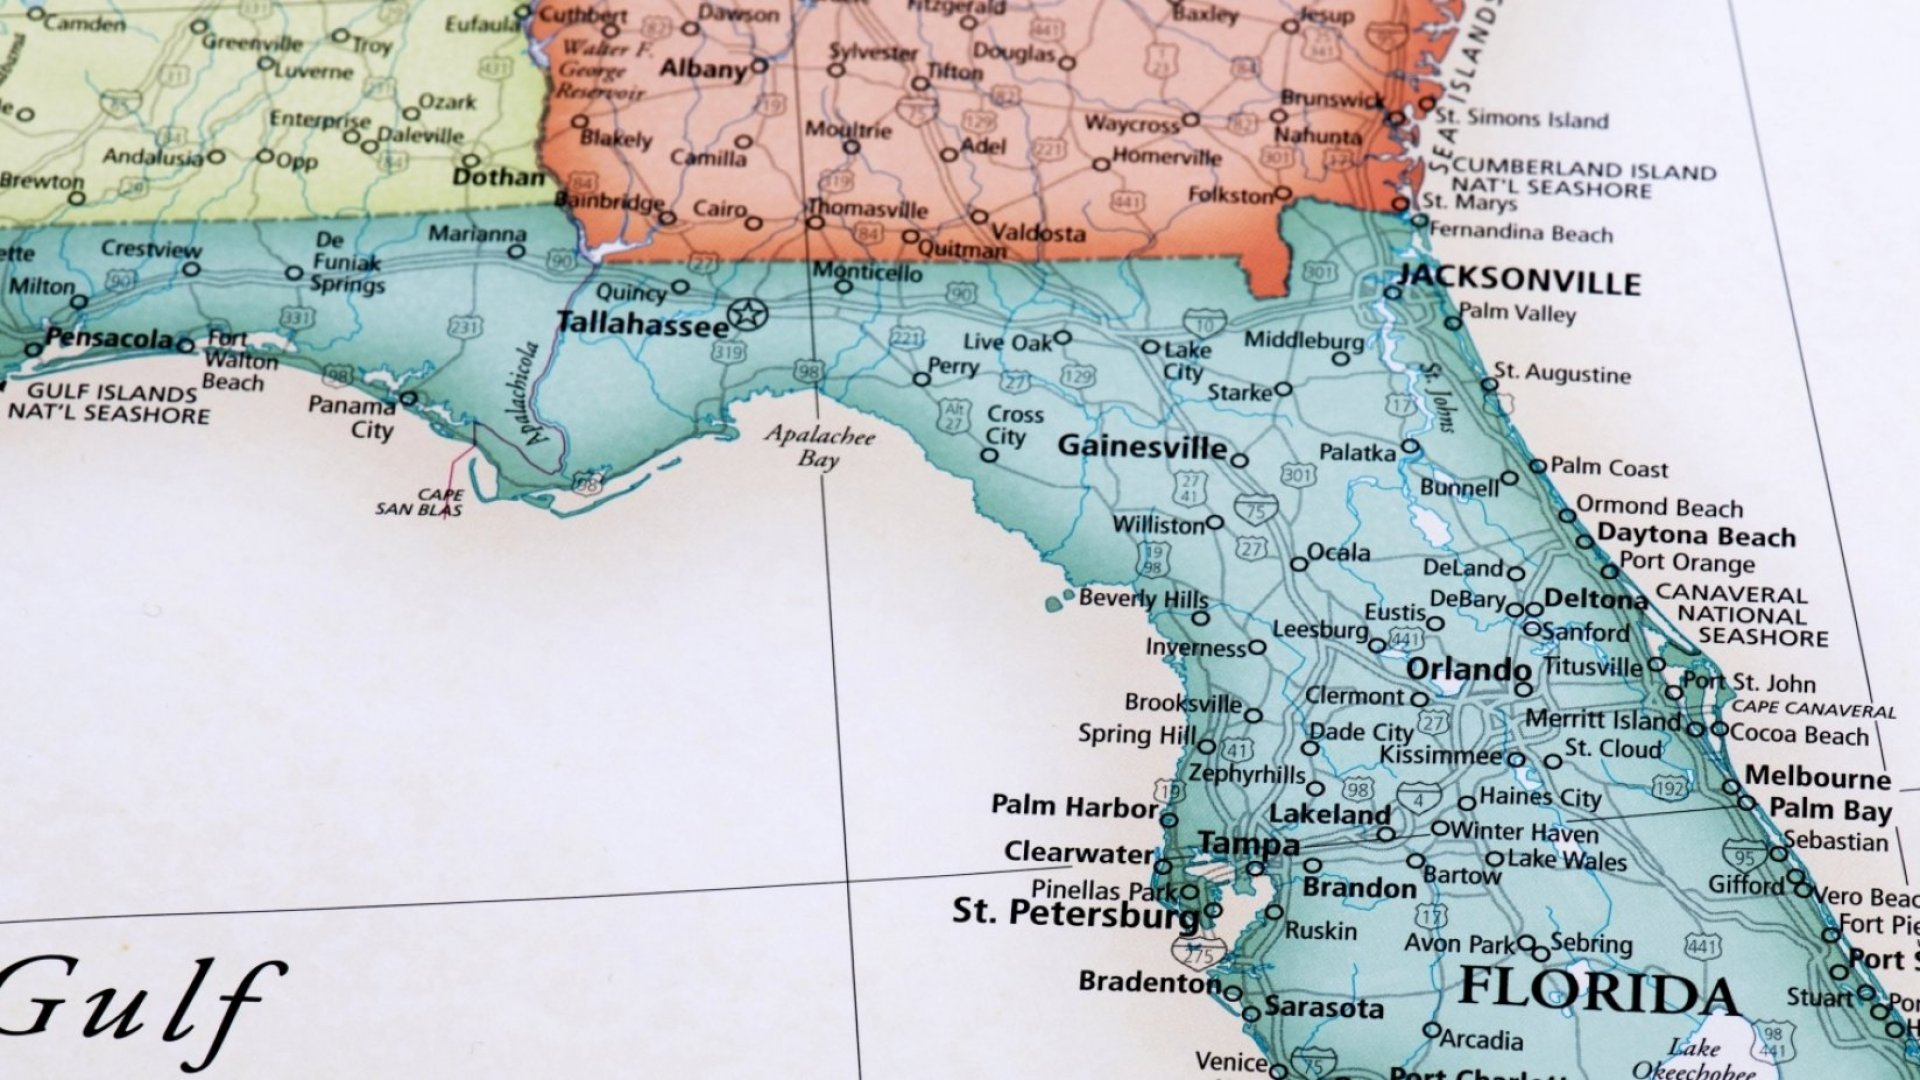 Mayo Florida Temporarily Changes Name to Miracle Whip, Supposedly Fooling 1,232 Residents